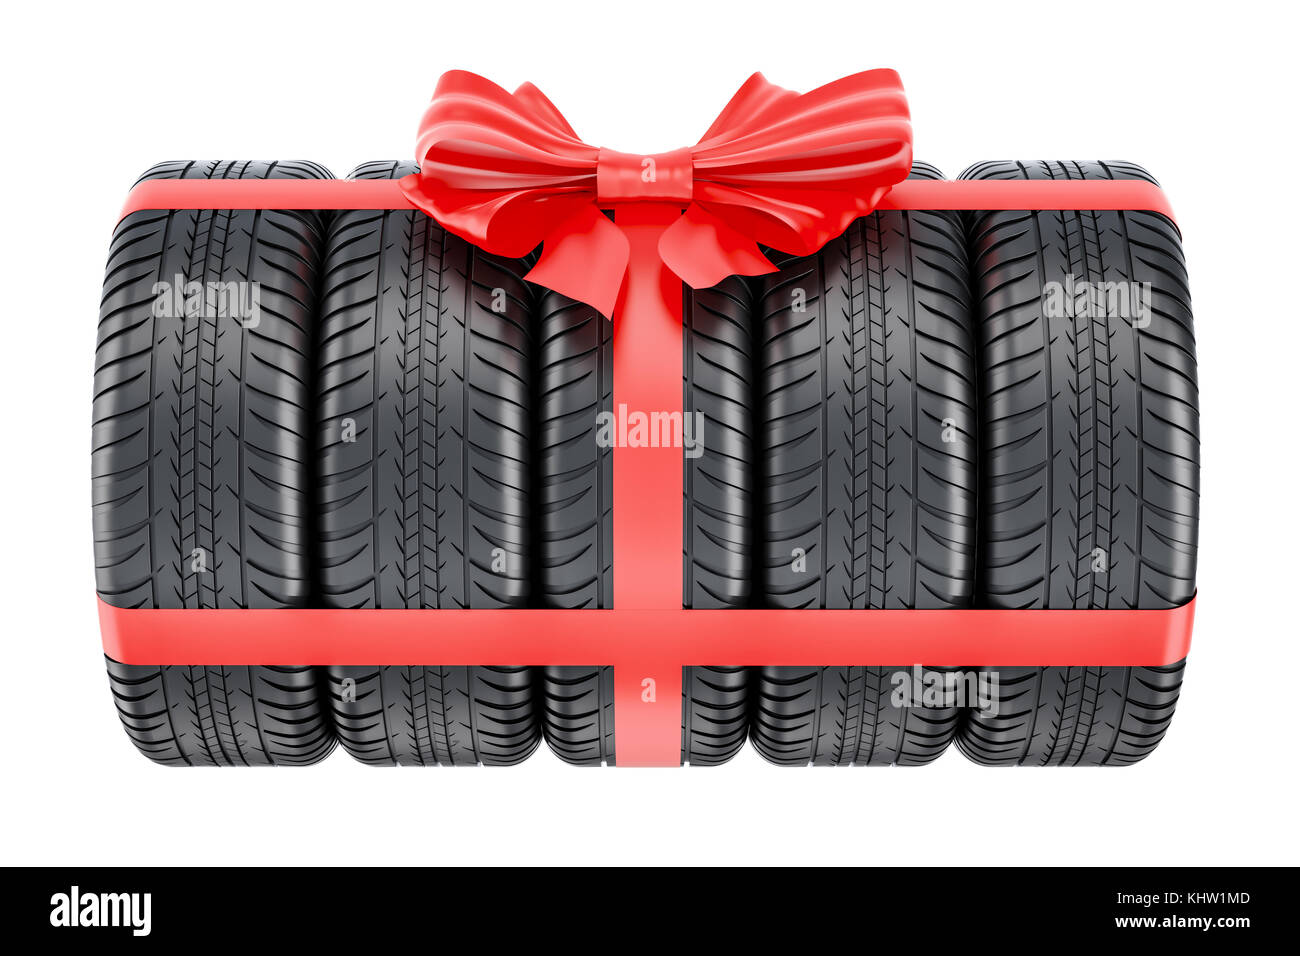 Discount tire stock photos discount tire stock images alamy tires wrapped ribbon and bow gift concept 3d rendering isolated on white background buycottarizona